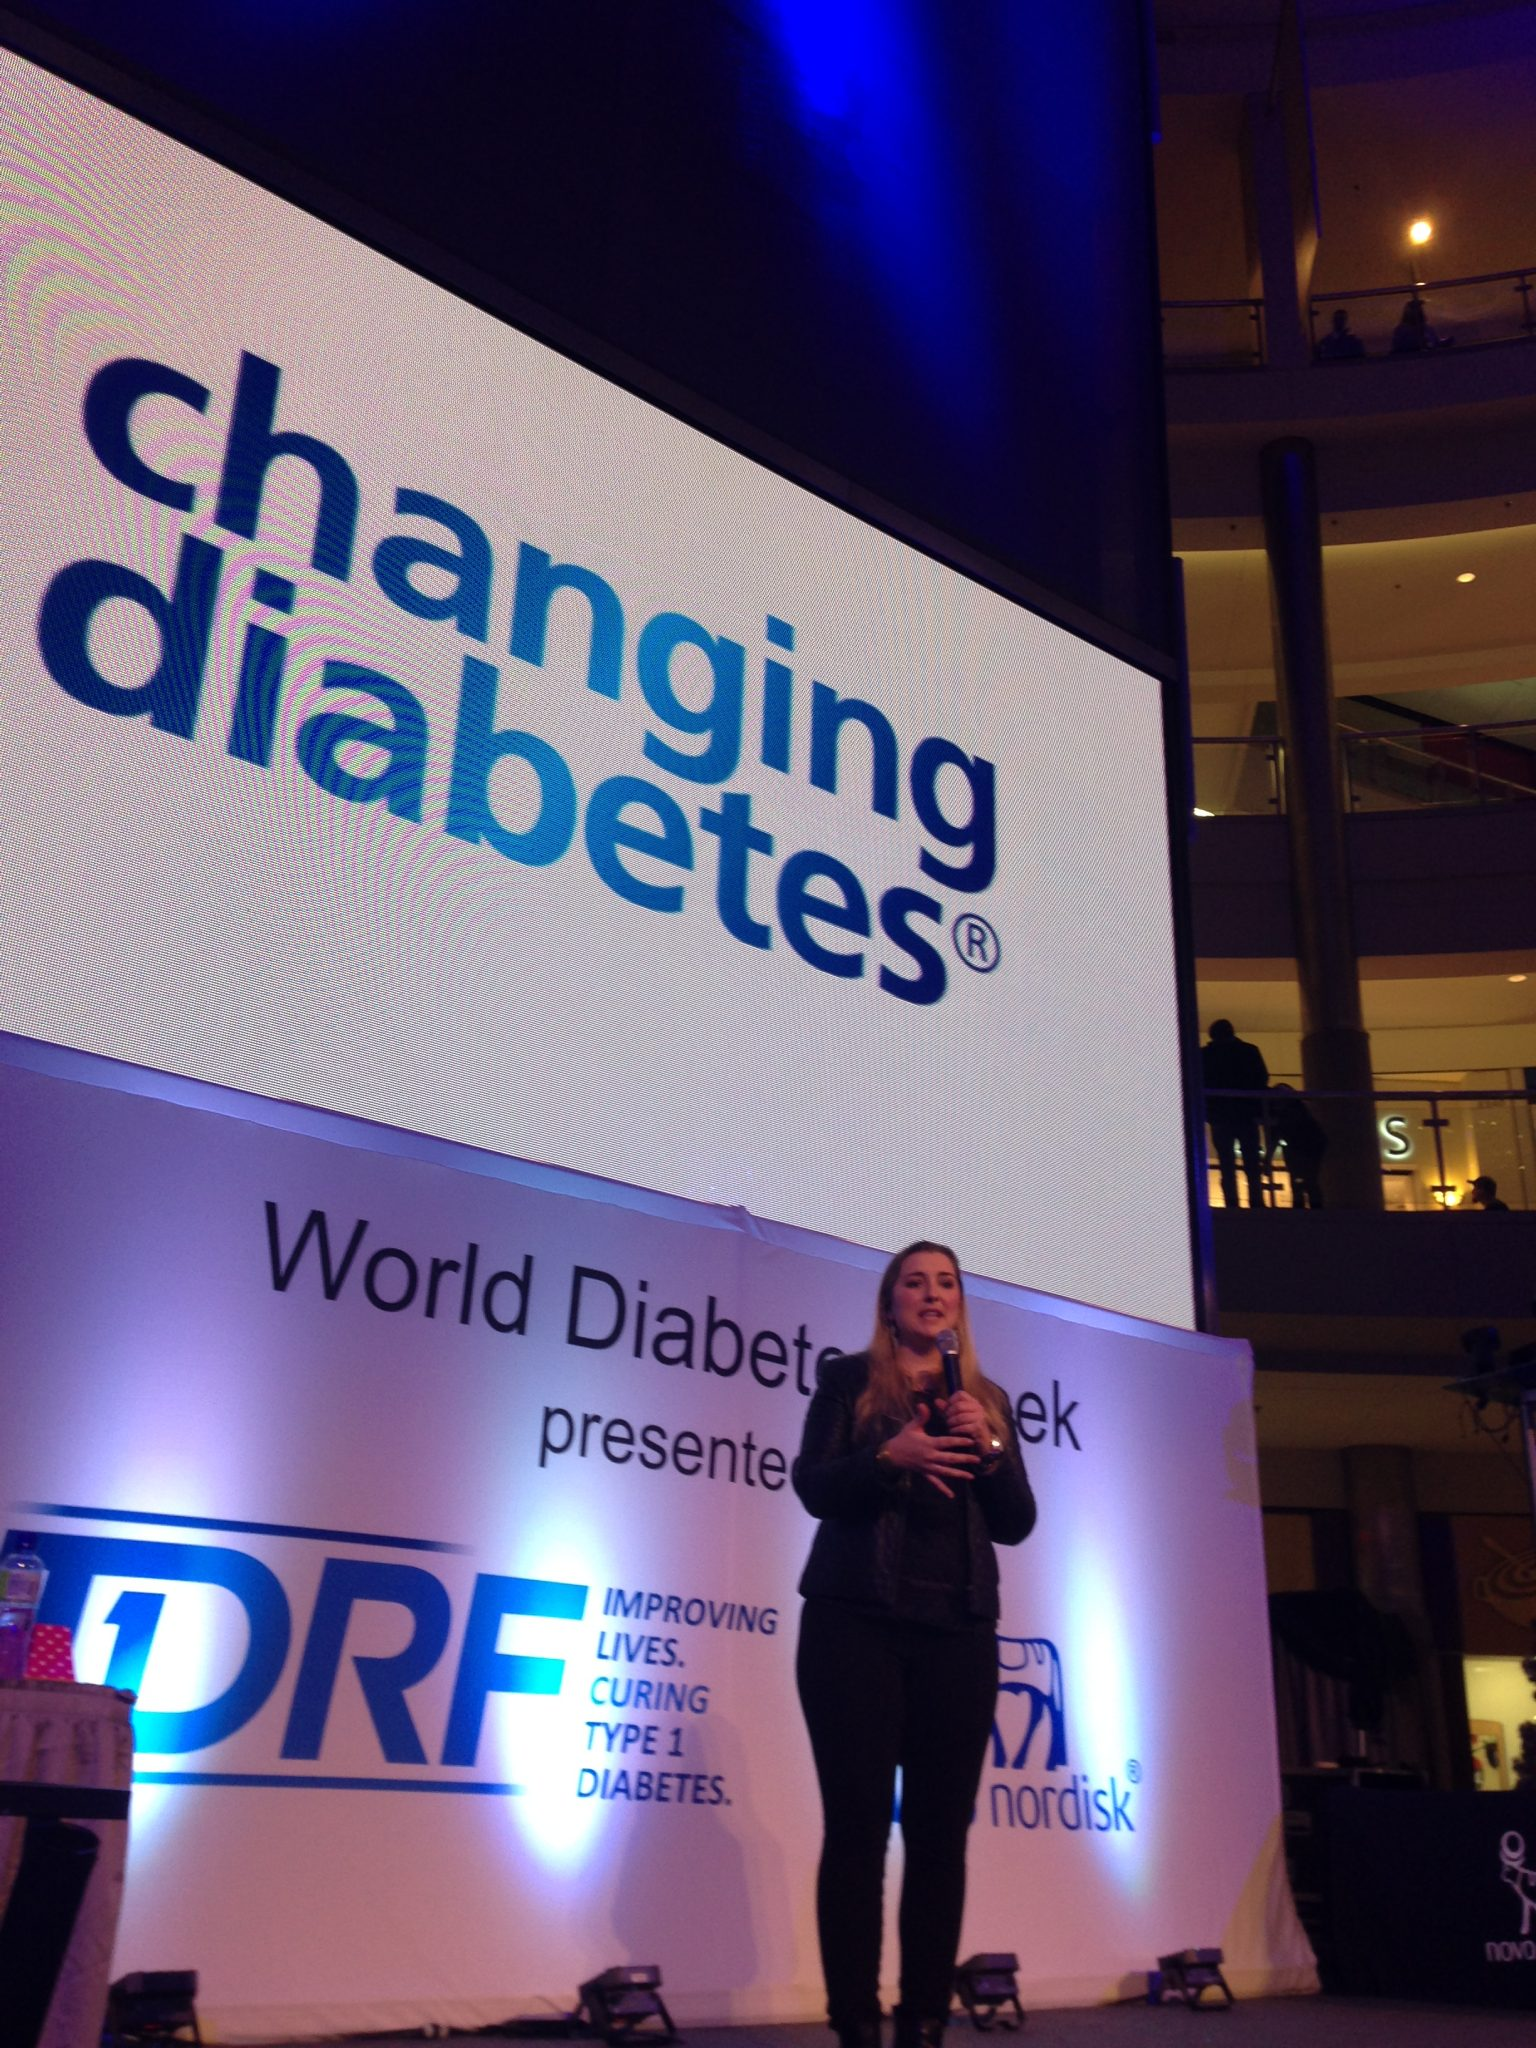 Quinn speaking at the Mall of America this past November for World Diabetes Day.